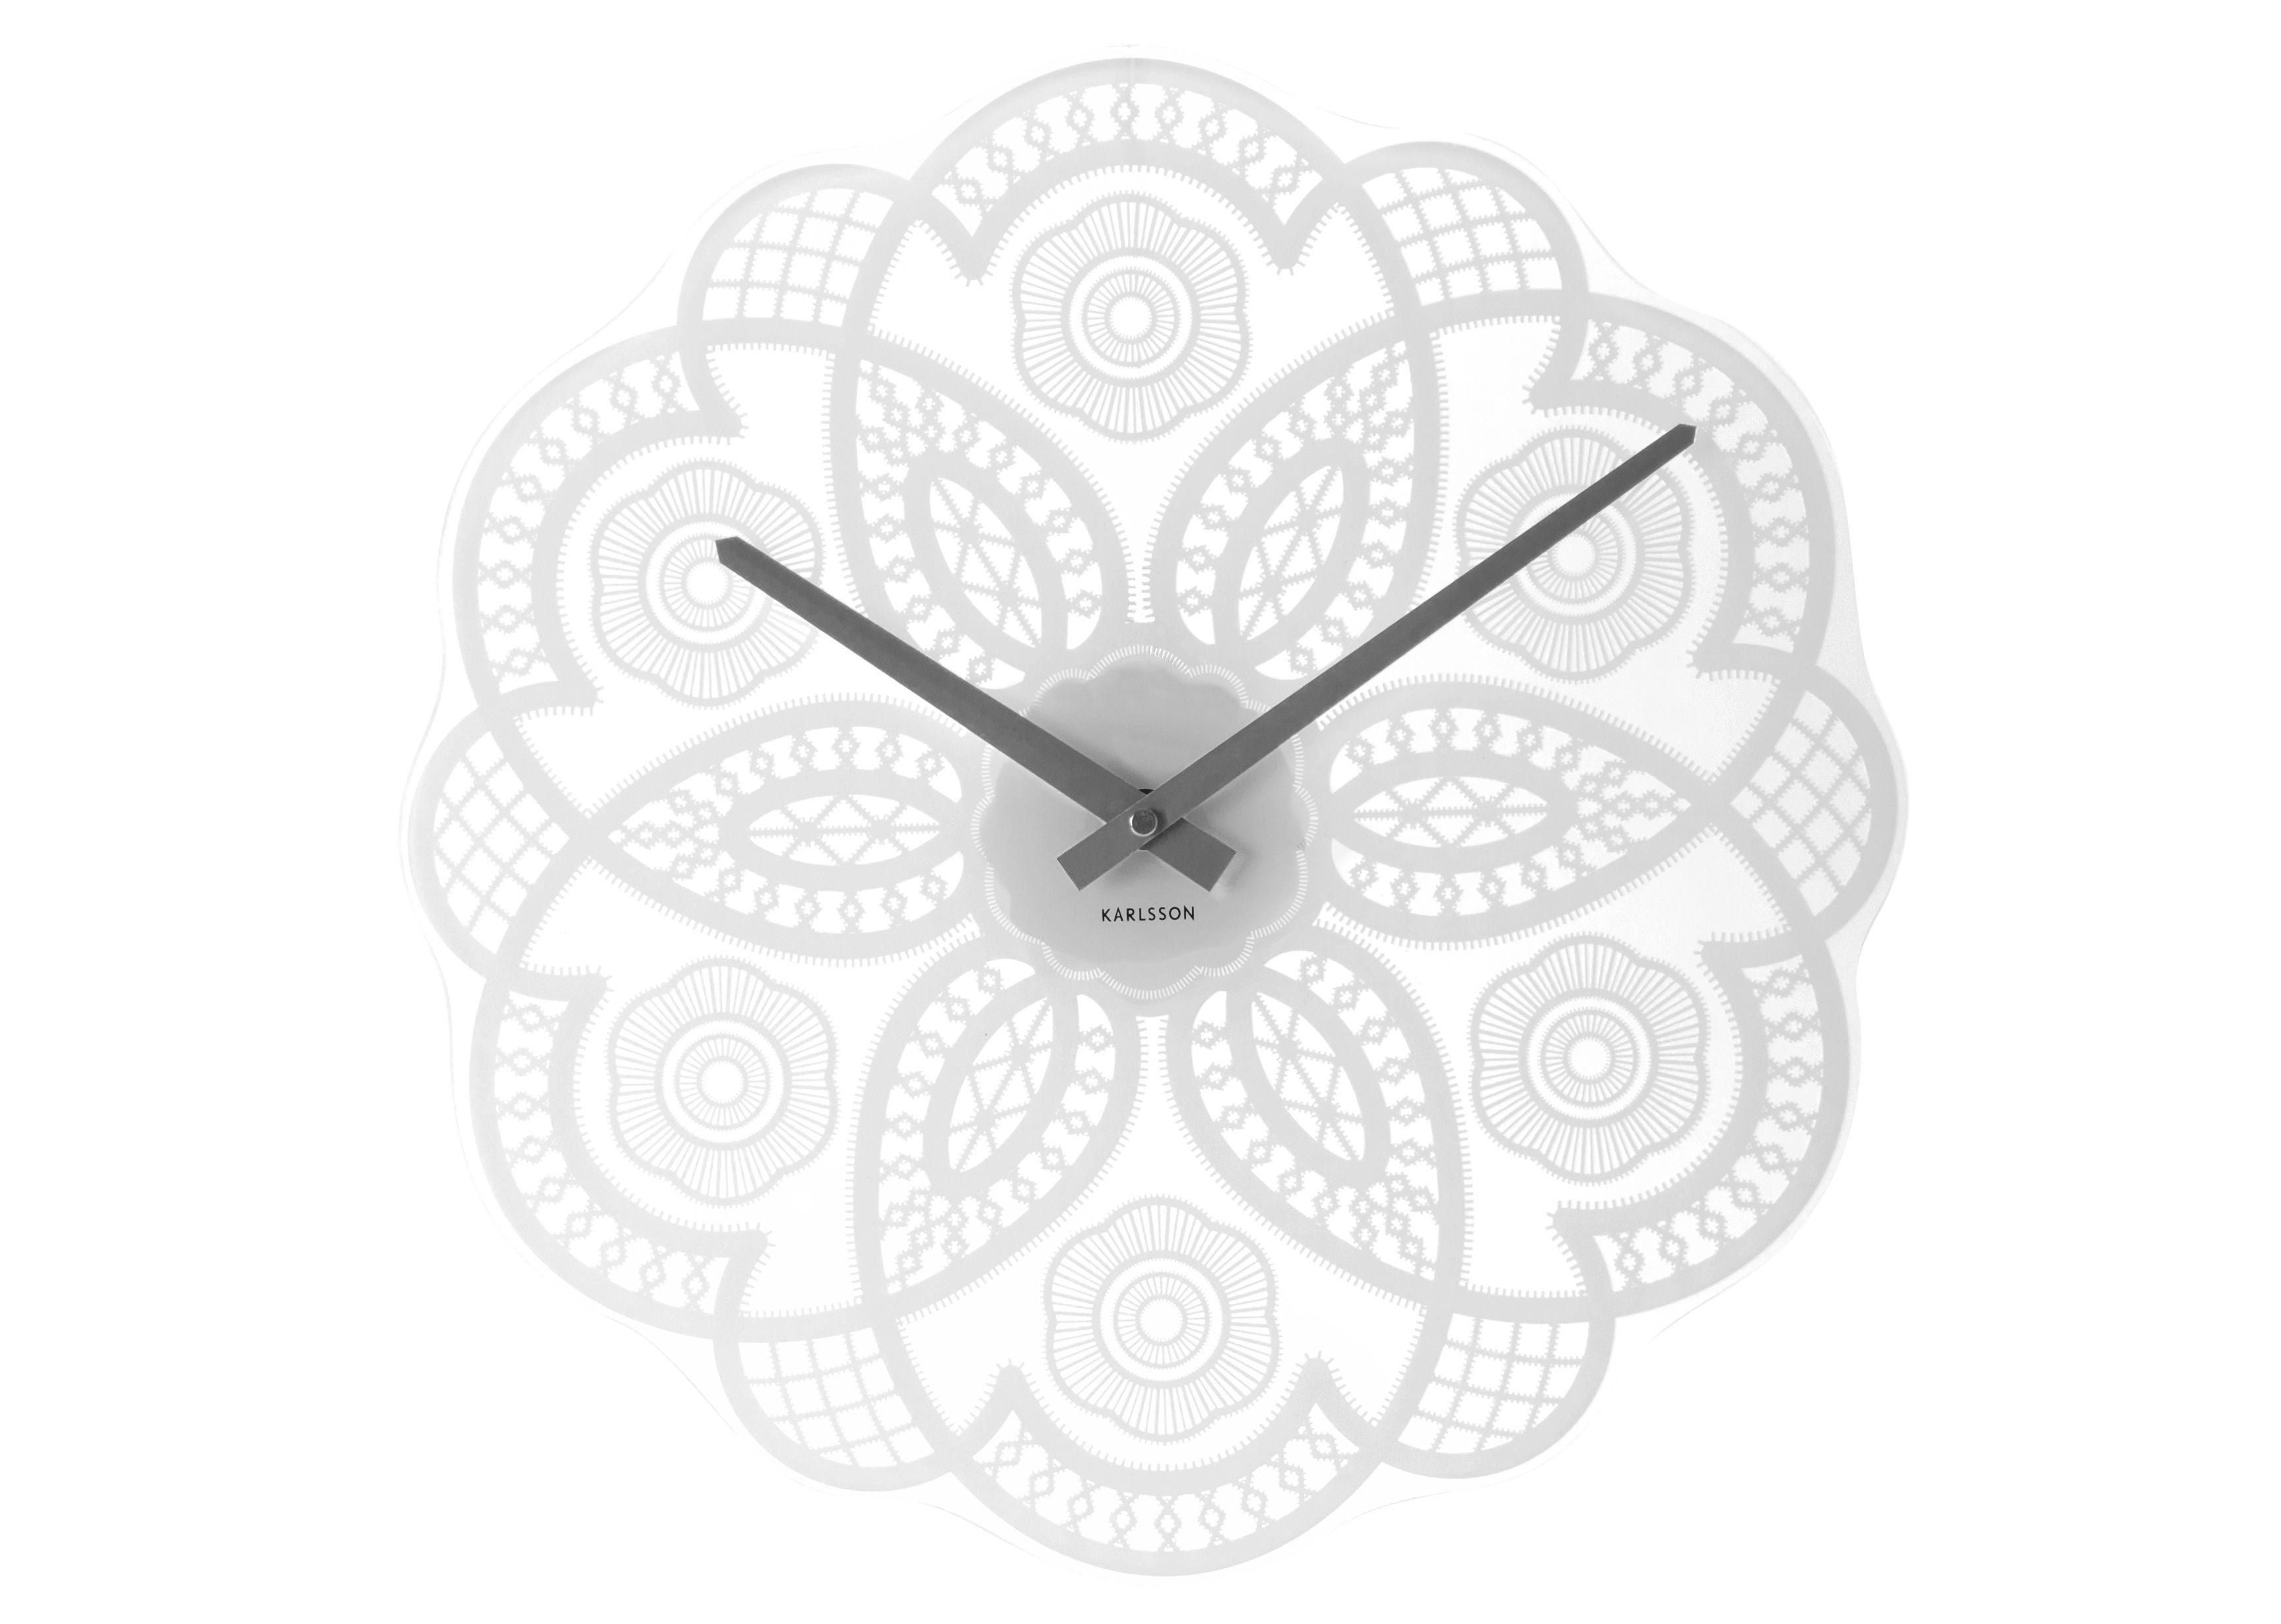 If Your Style Is Contemporary But You Love Vintage And Traditional Pieces  Too, Karlssonu0027s Delicate Wall Clock Is A Happy Marriage Of The Two.